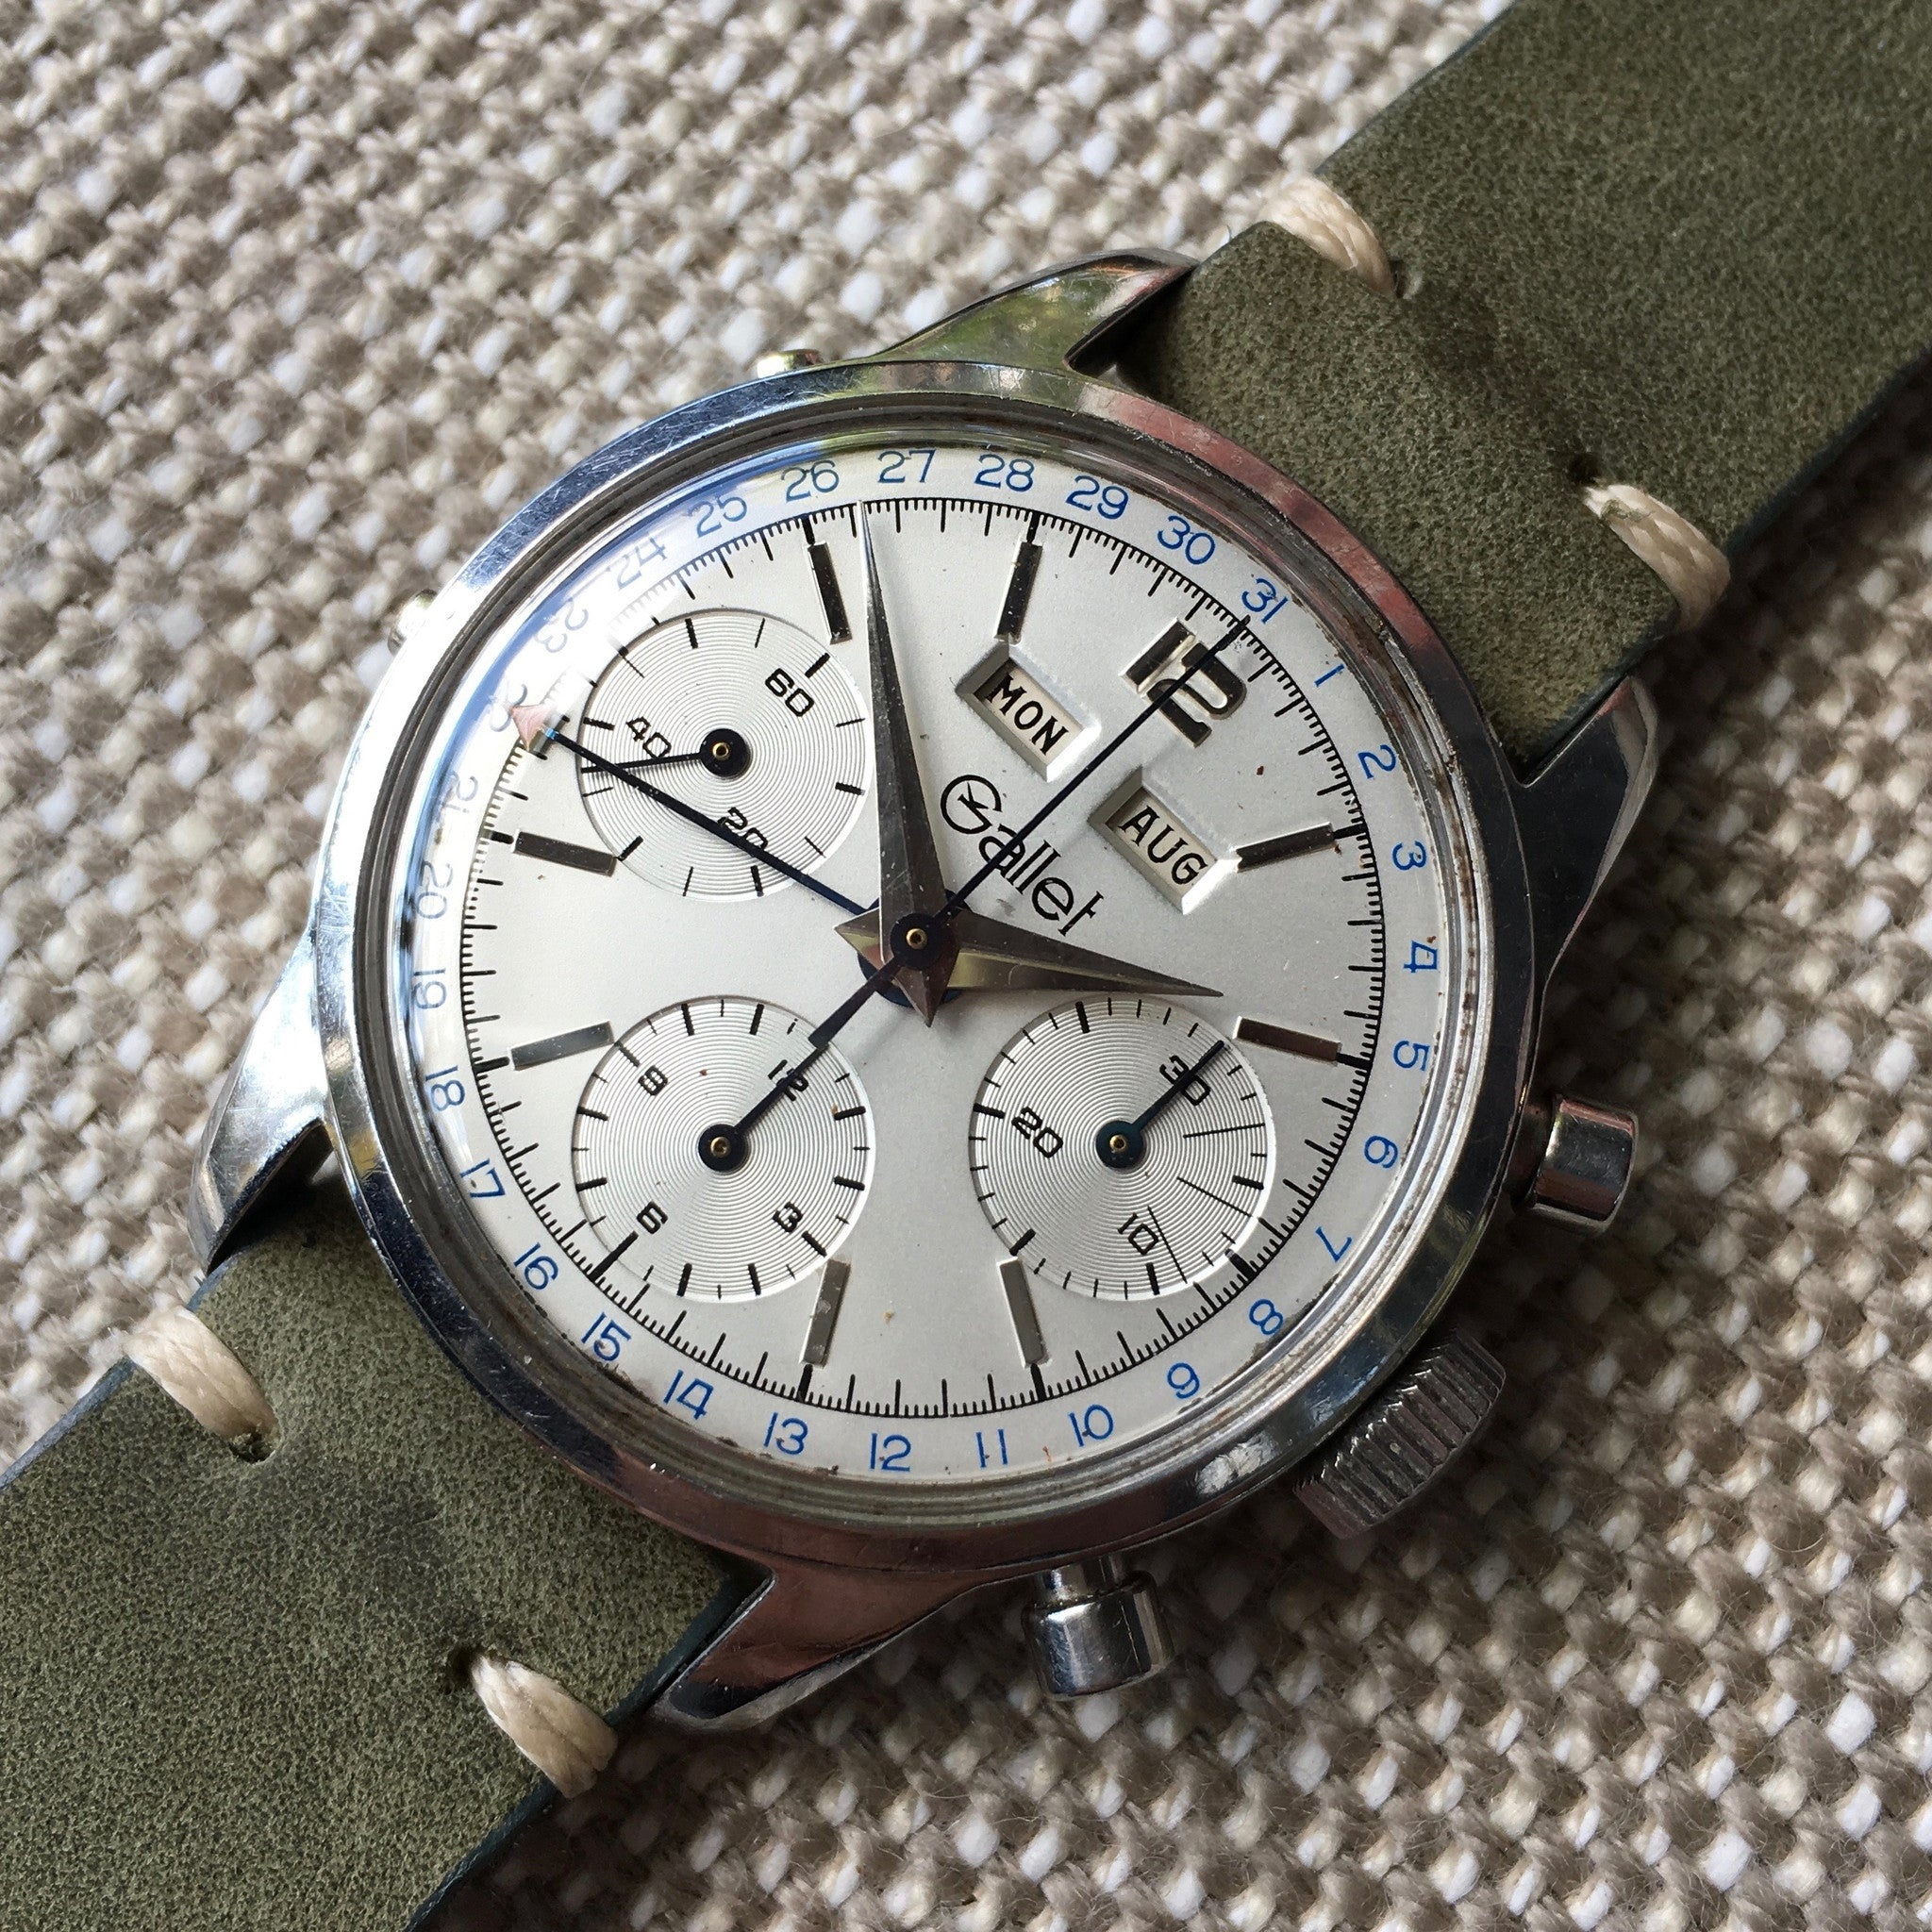 Vintage Gallet Steel Triple Date Chronograph 998 Valjoux 723 Manual Wind Wristwatch - Hashtag Watch Company